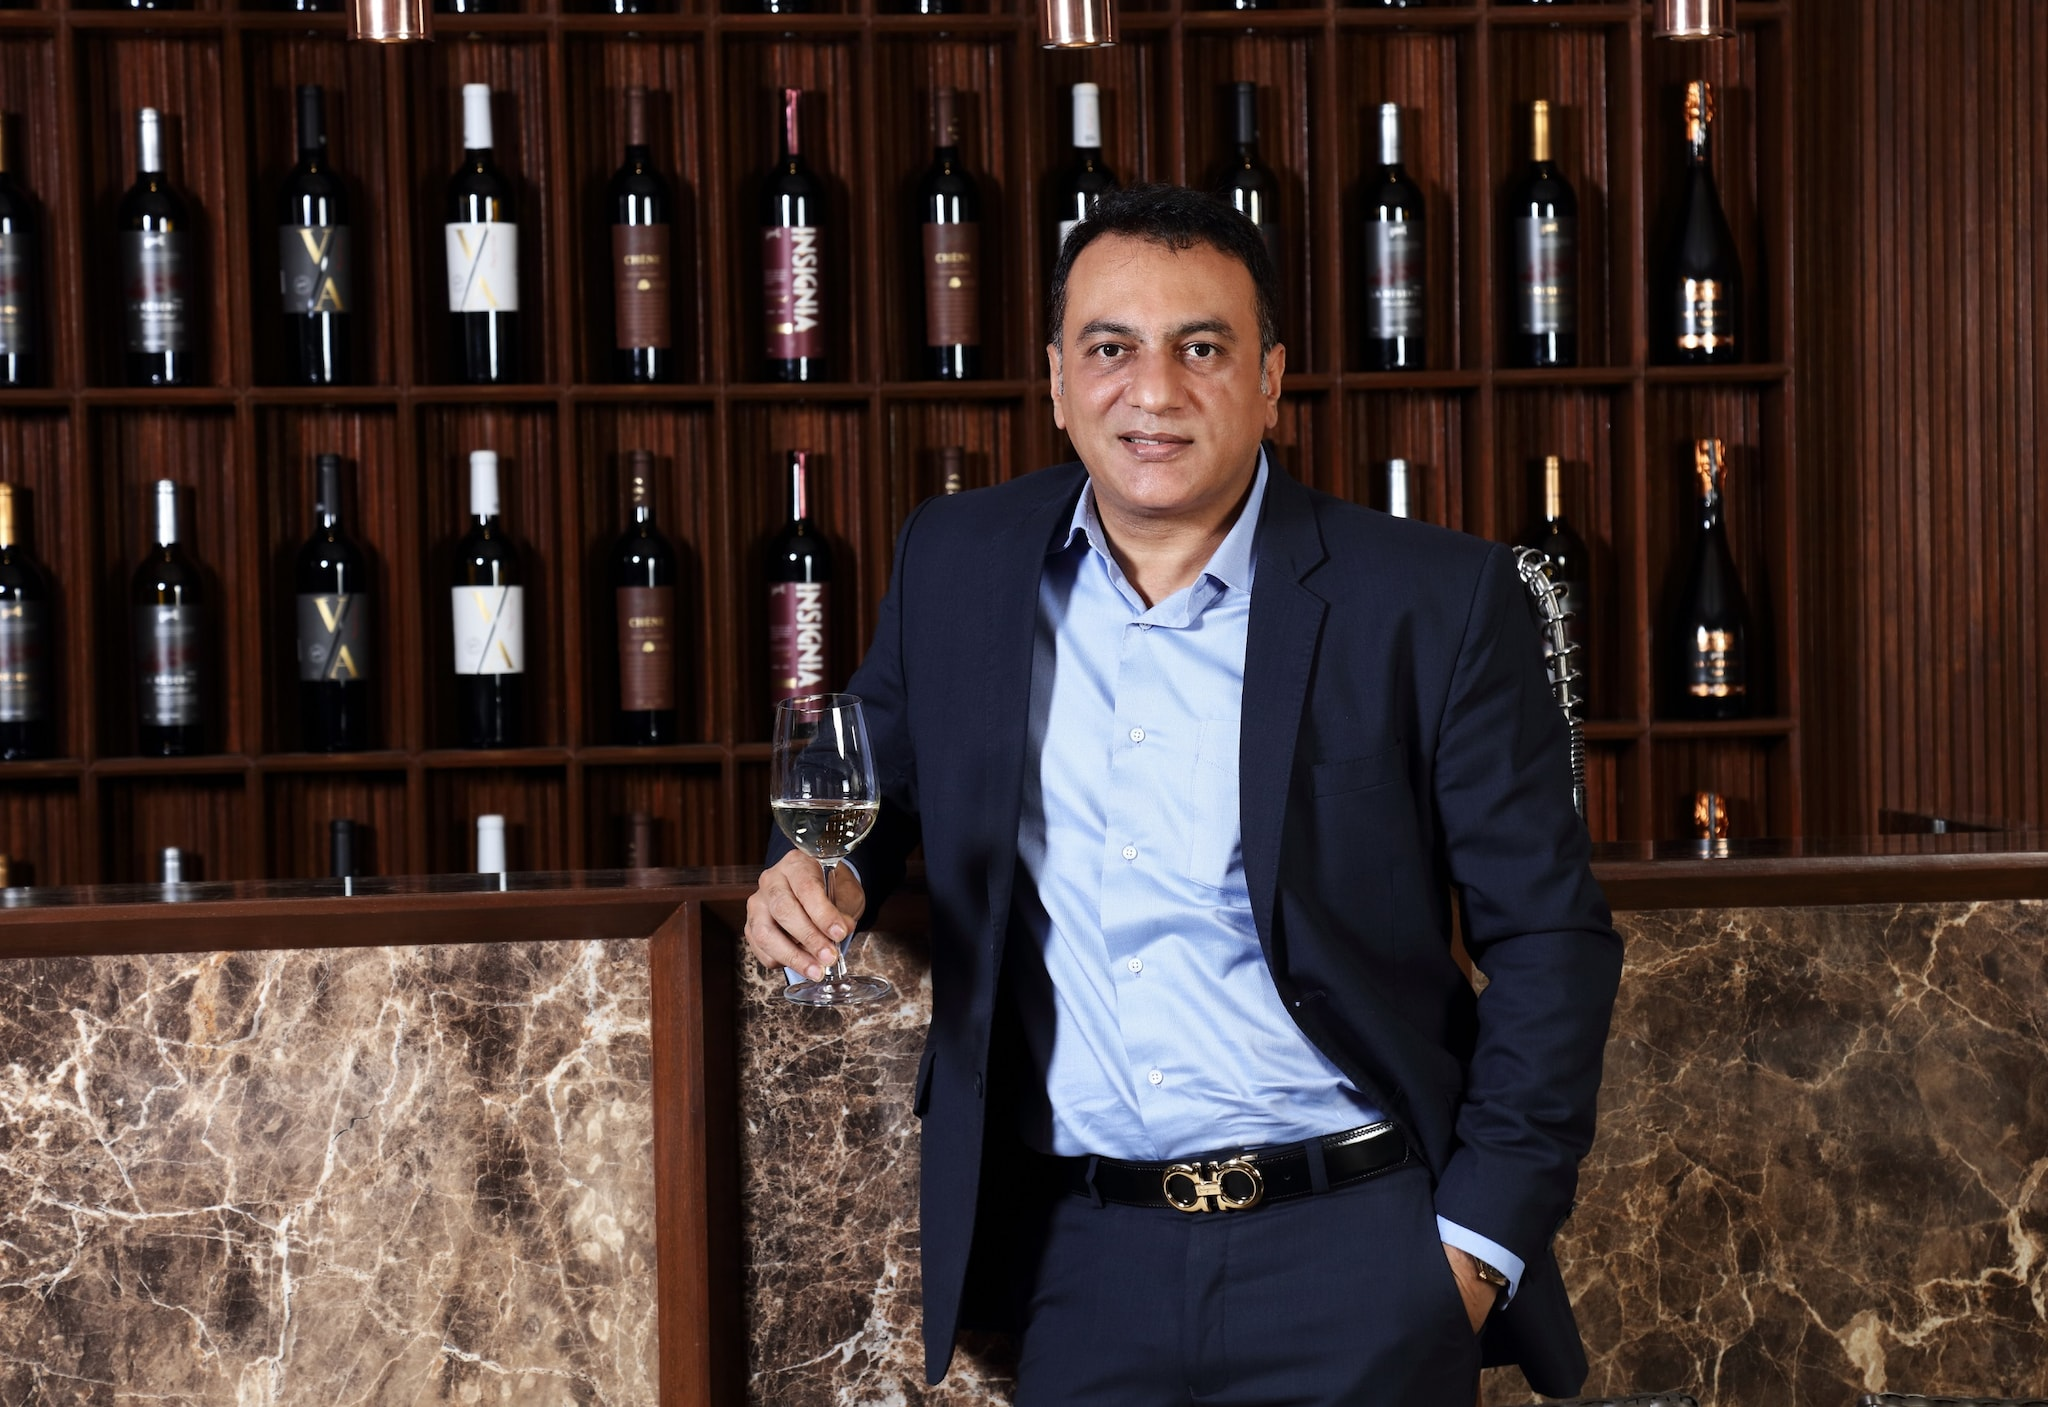 Vivek Chandramohan, CEO, Grover Zampa Vineyards